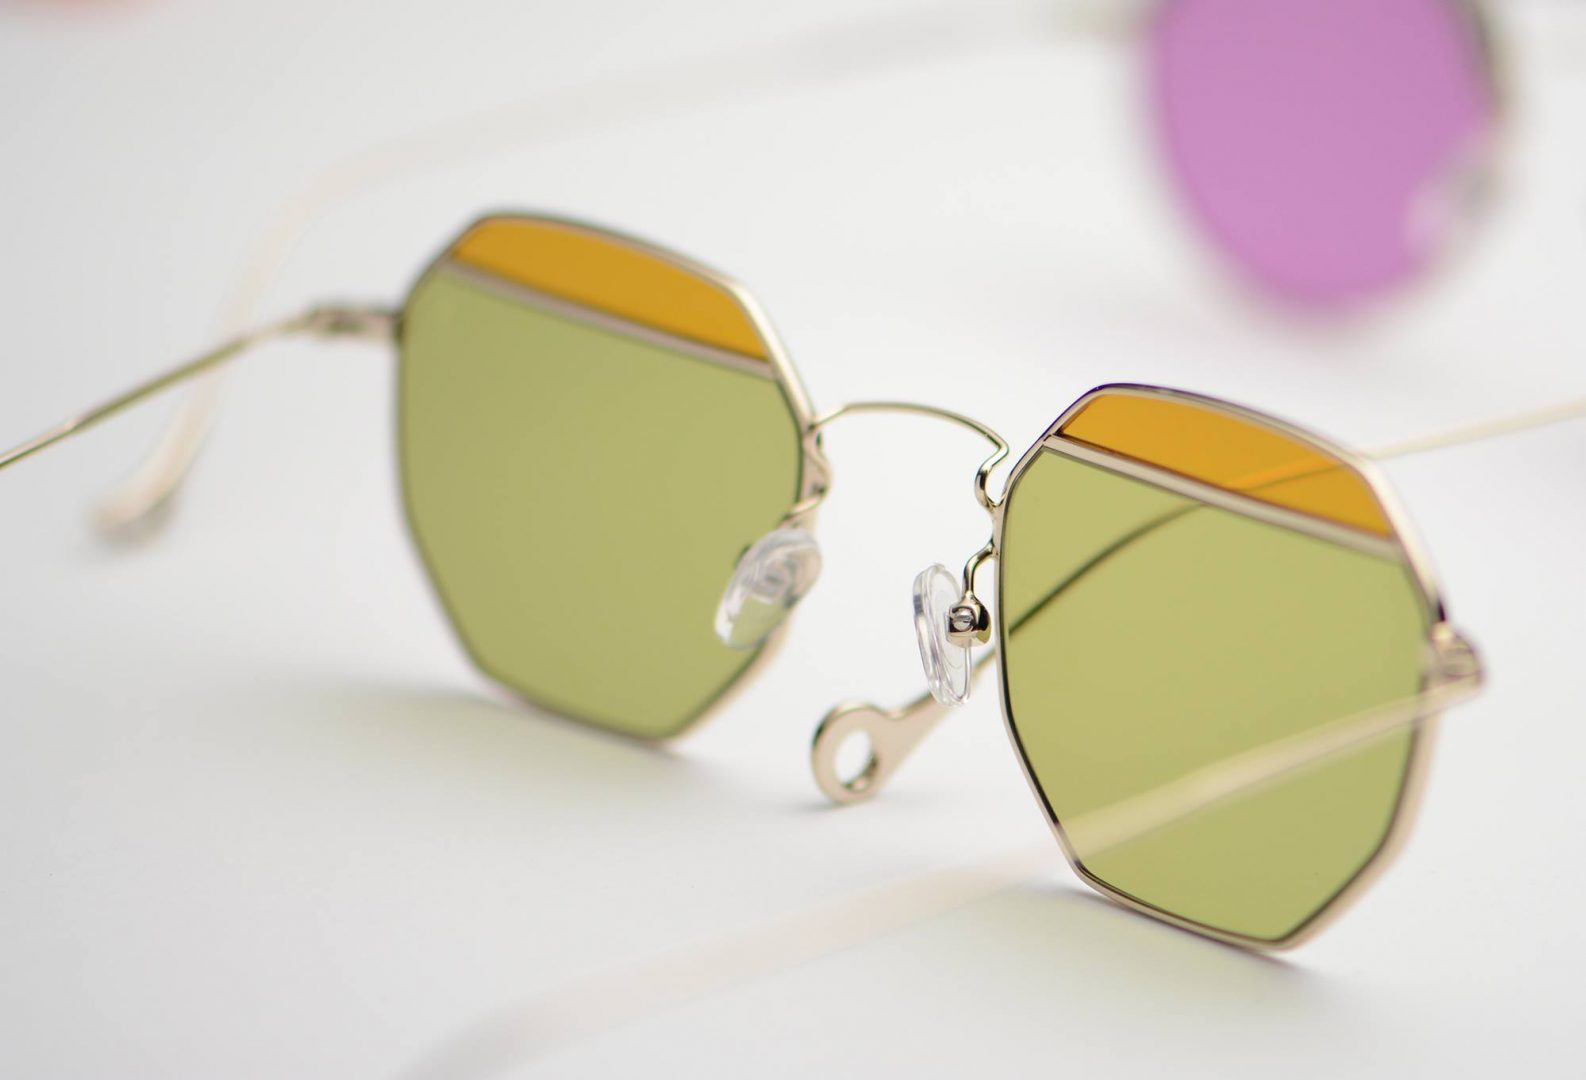 Current Obsession Peculiar Colour Blocking Sunglasses by Eyepitizer Buy Shop Online Colour Lenses Trend 2018 Eyeglasses Cheap Designer